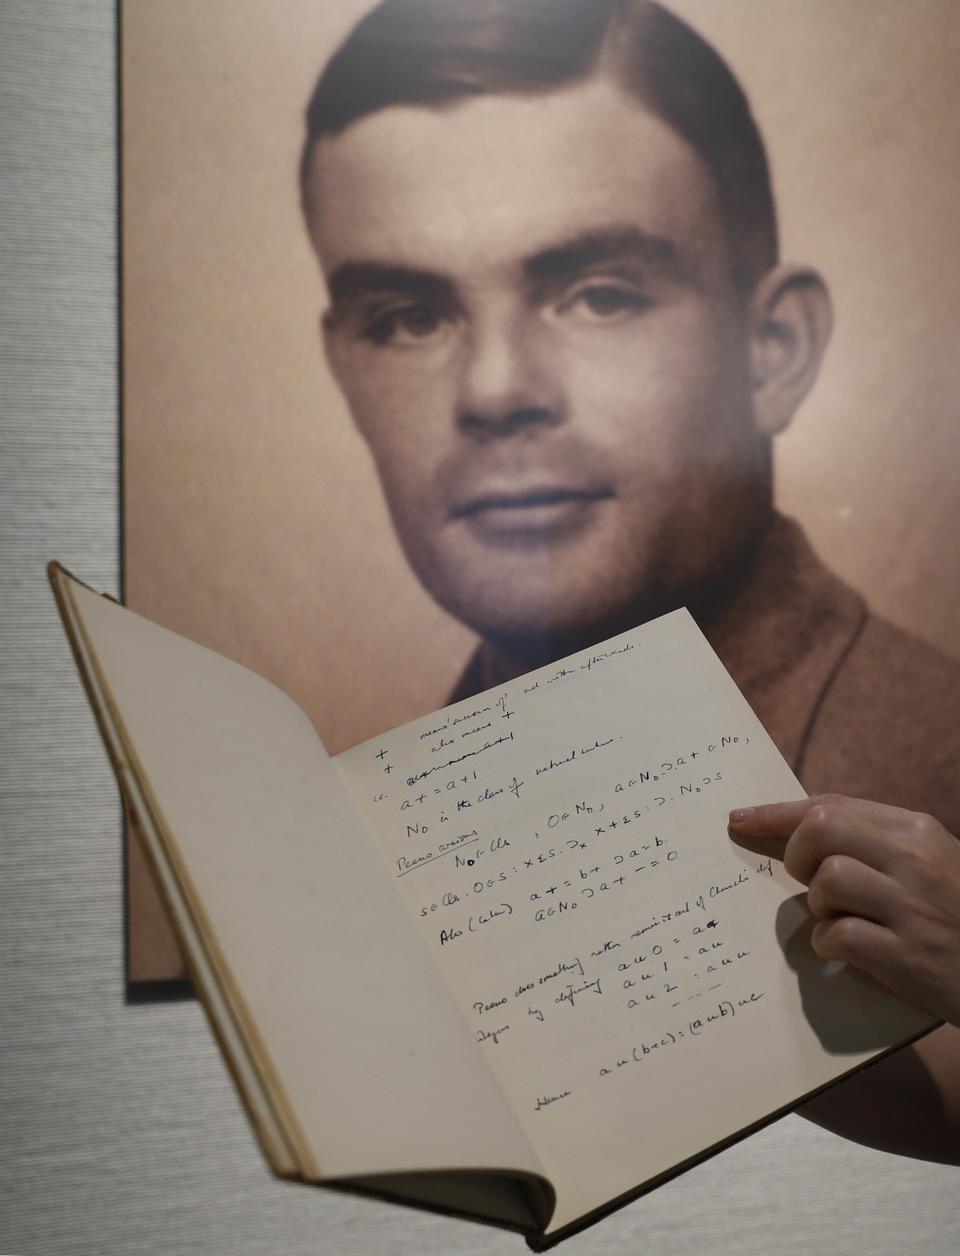 Alan Turing Predicts Machine Learning And The Impact Of Artificial Intelligence On Jobs